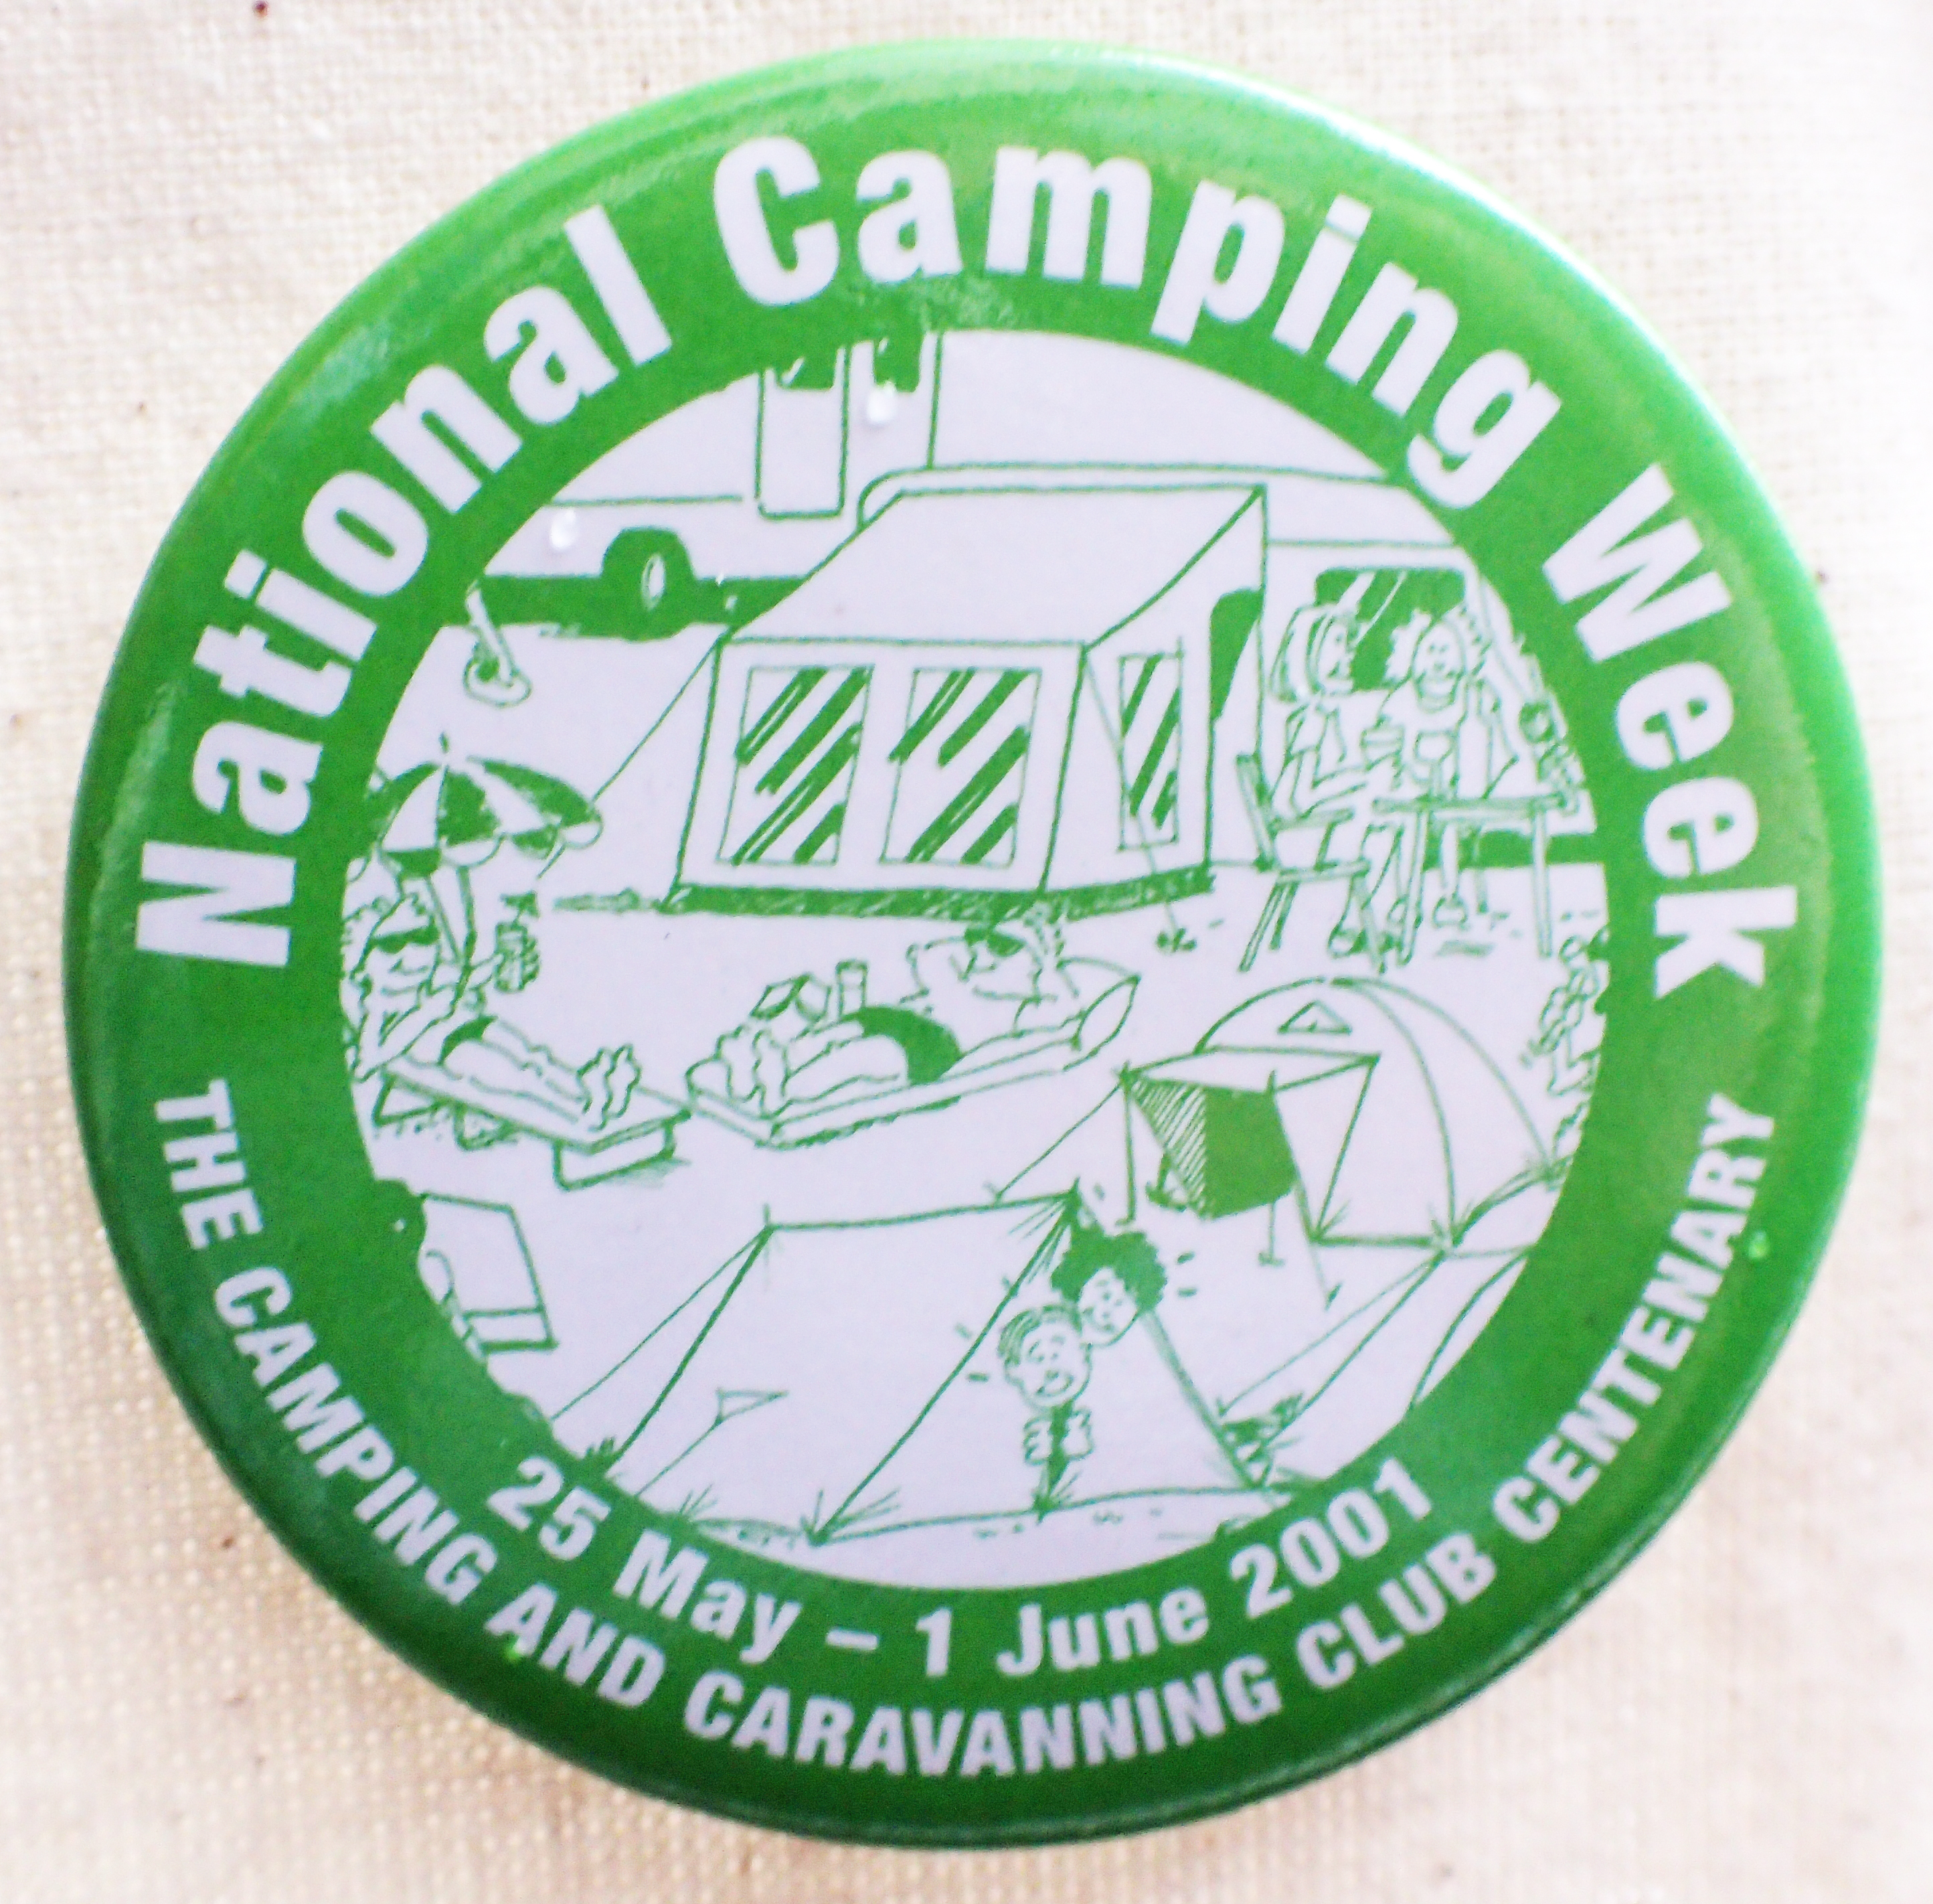 On the centenary of their creation, the Camping and Caravanning Club released a large button badge for their annual 'National Camping Week'